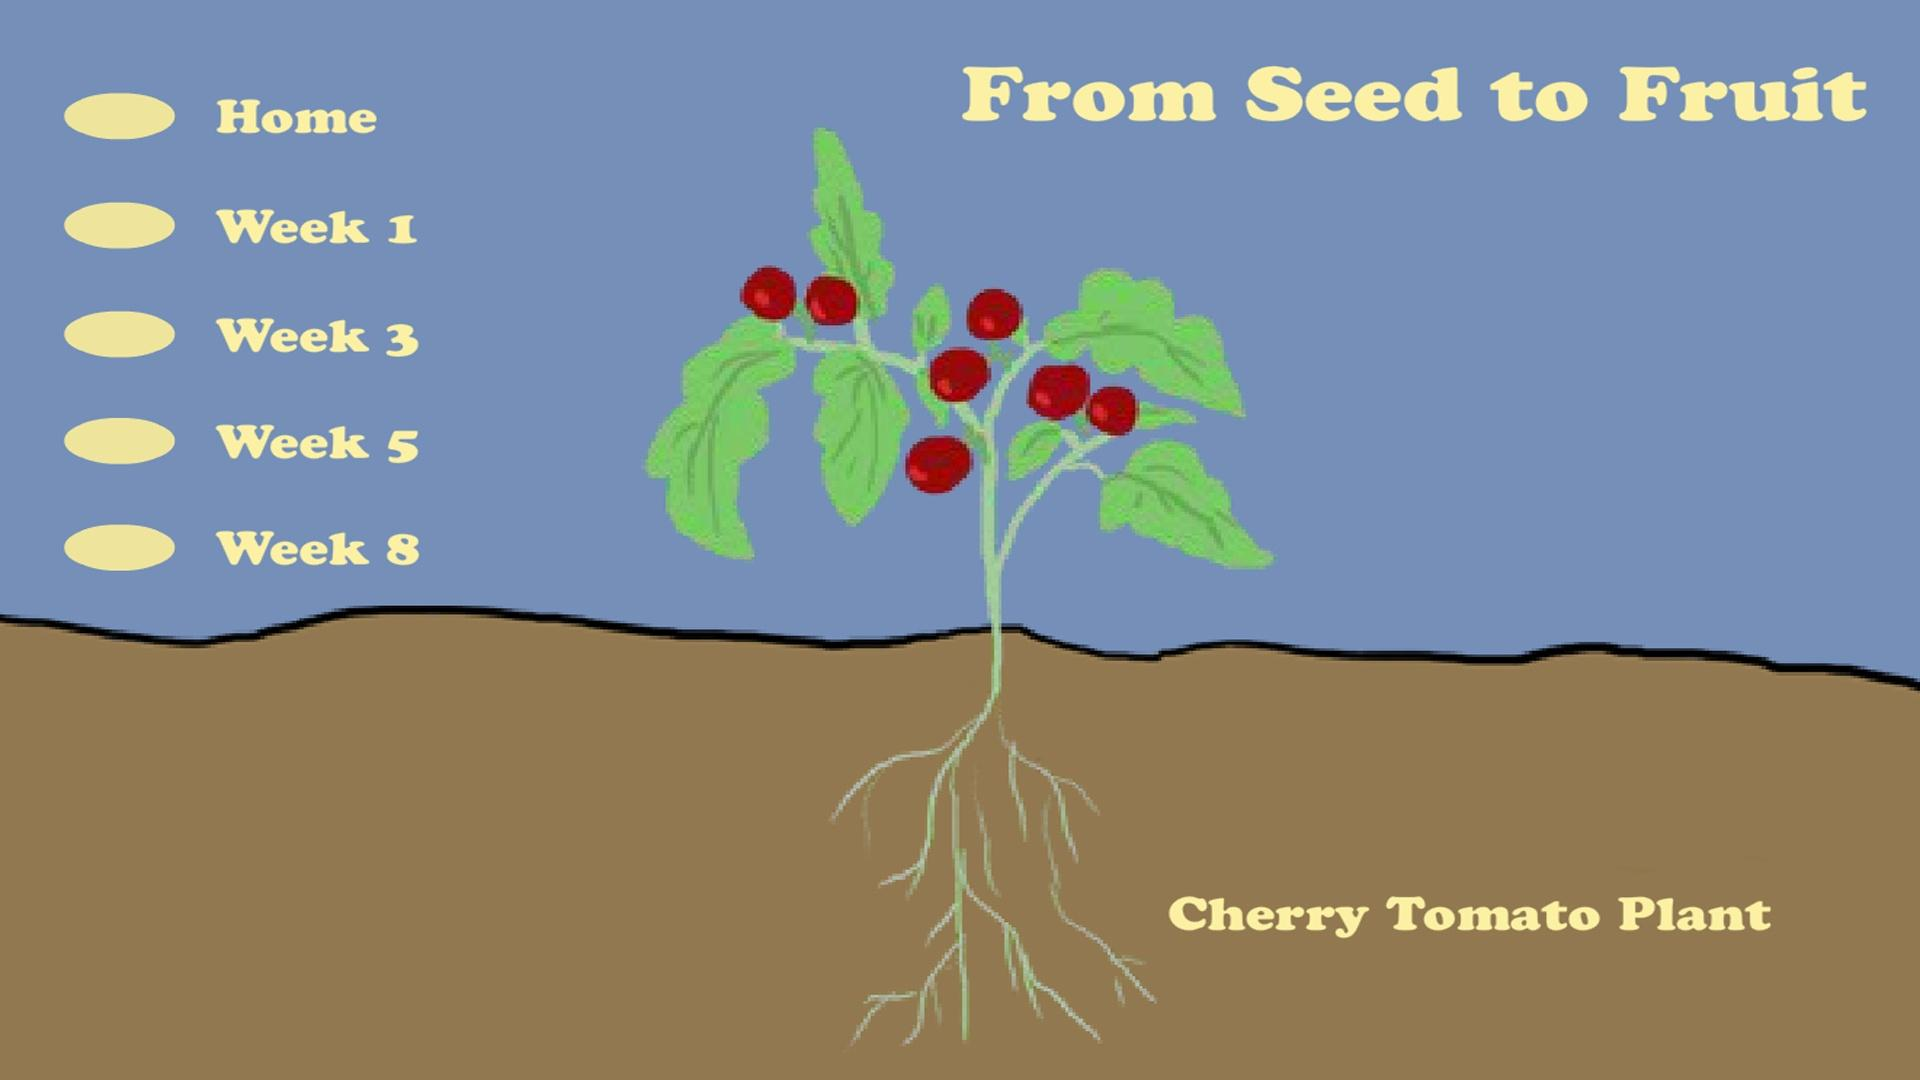 hight resolution of From Seed to Fruit   Everyday Learning   PBS LearningMedia